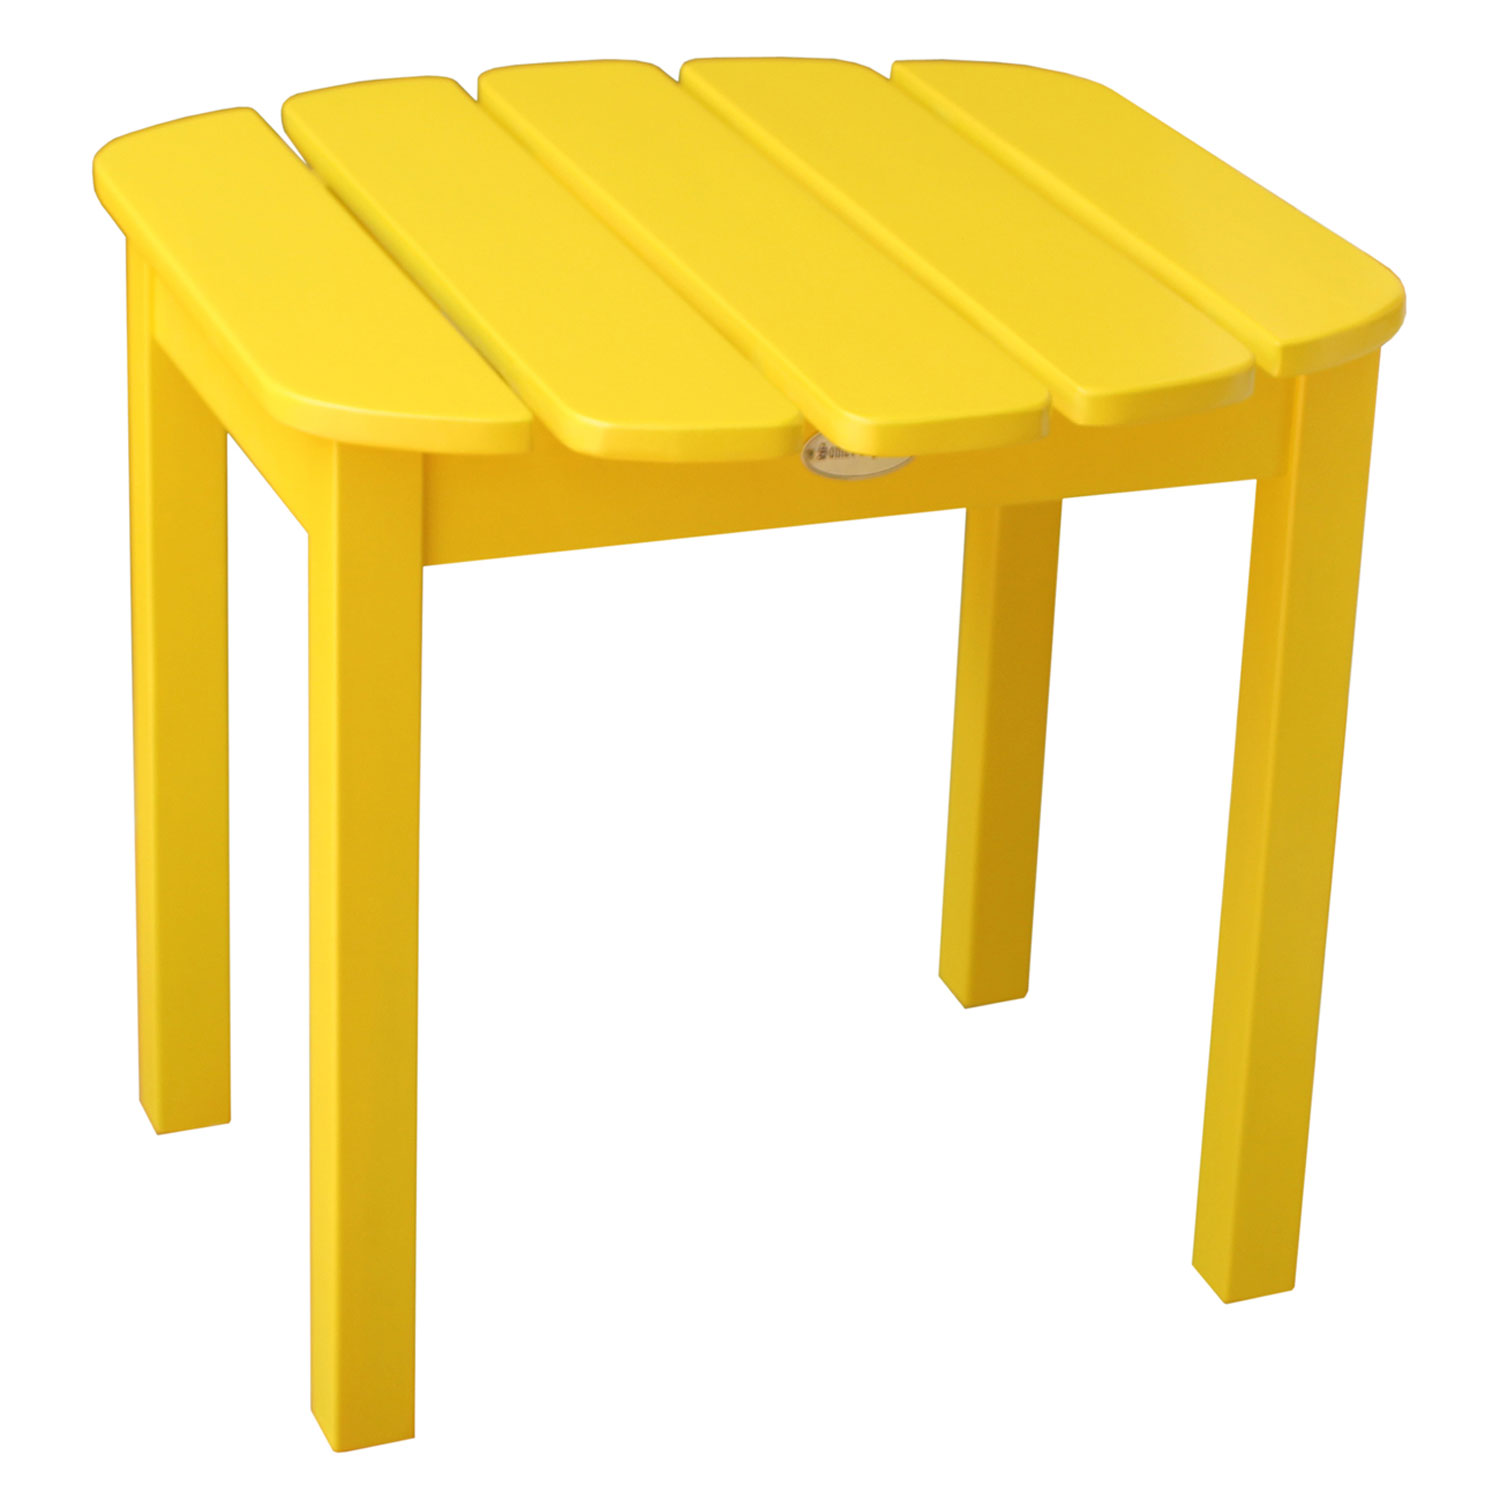 international concepts yellow outdoor adirondack side table accent hover zoom small patio with chairs lounge gold glass top coffee porch furniture target desks and industrial look